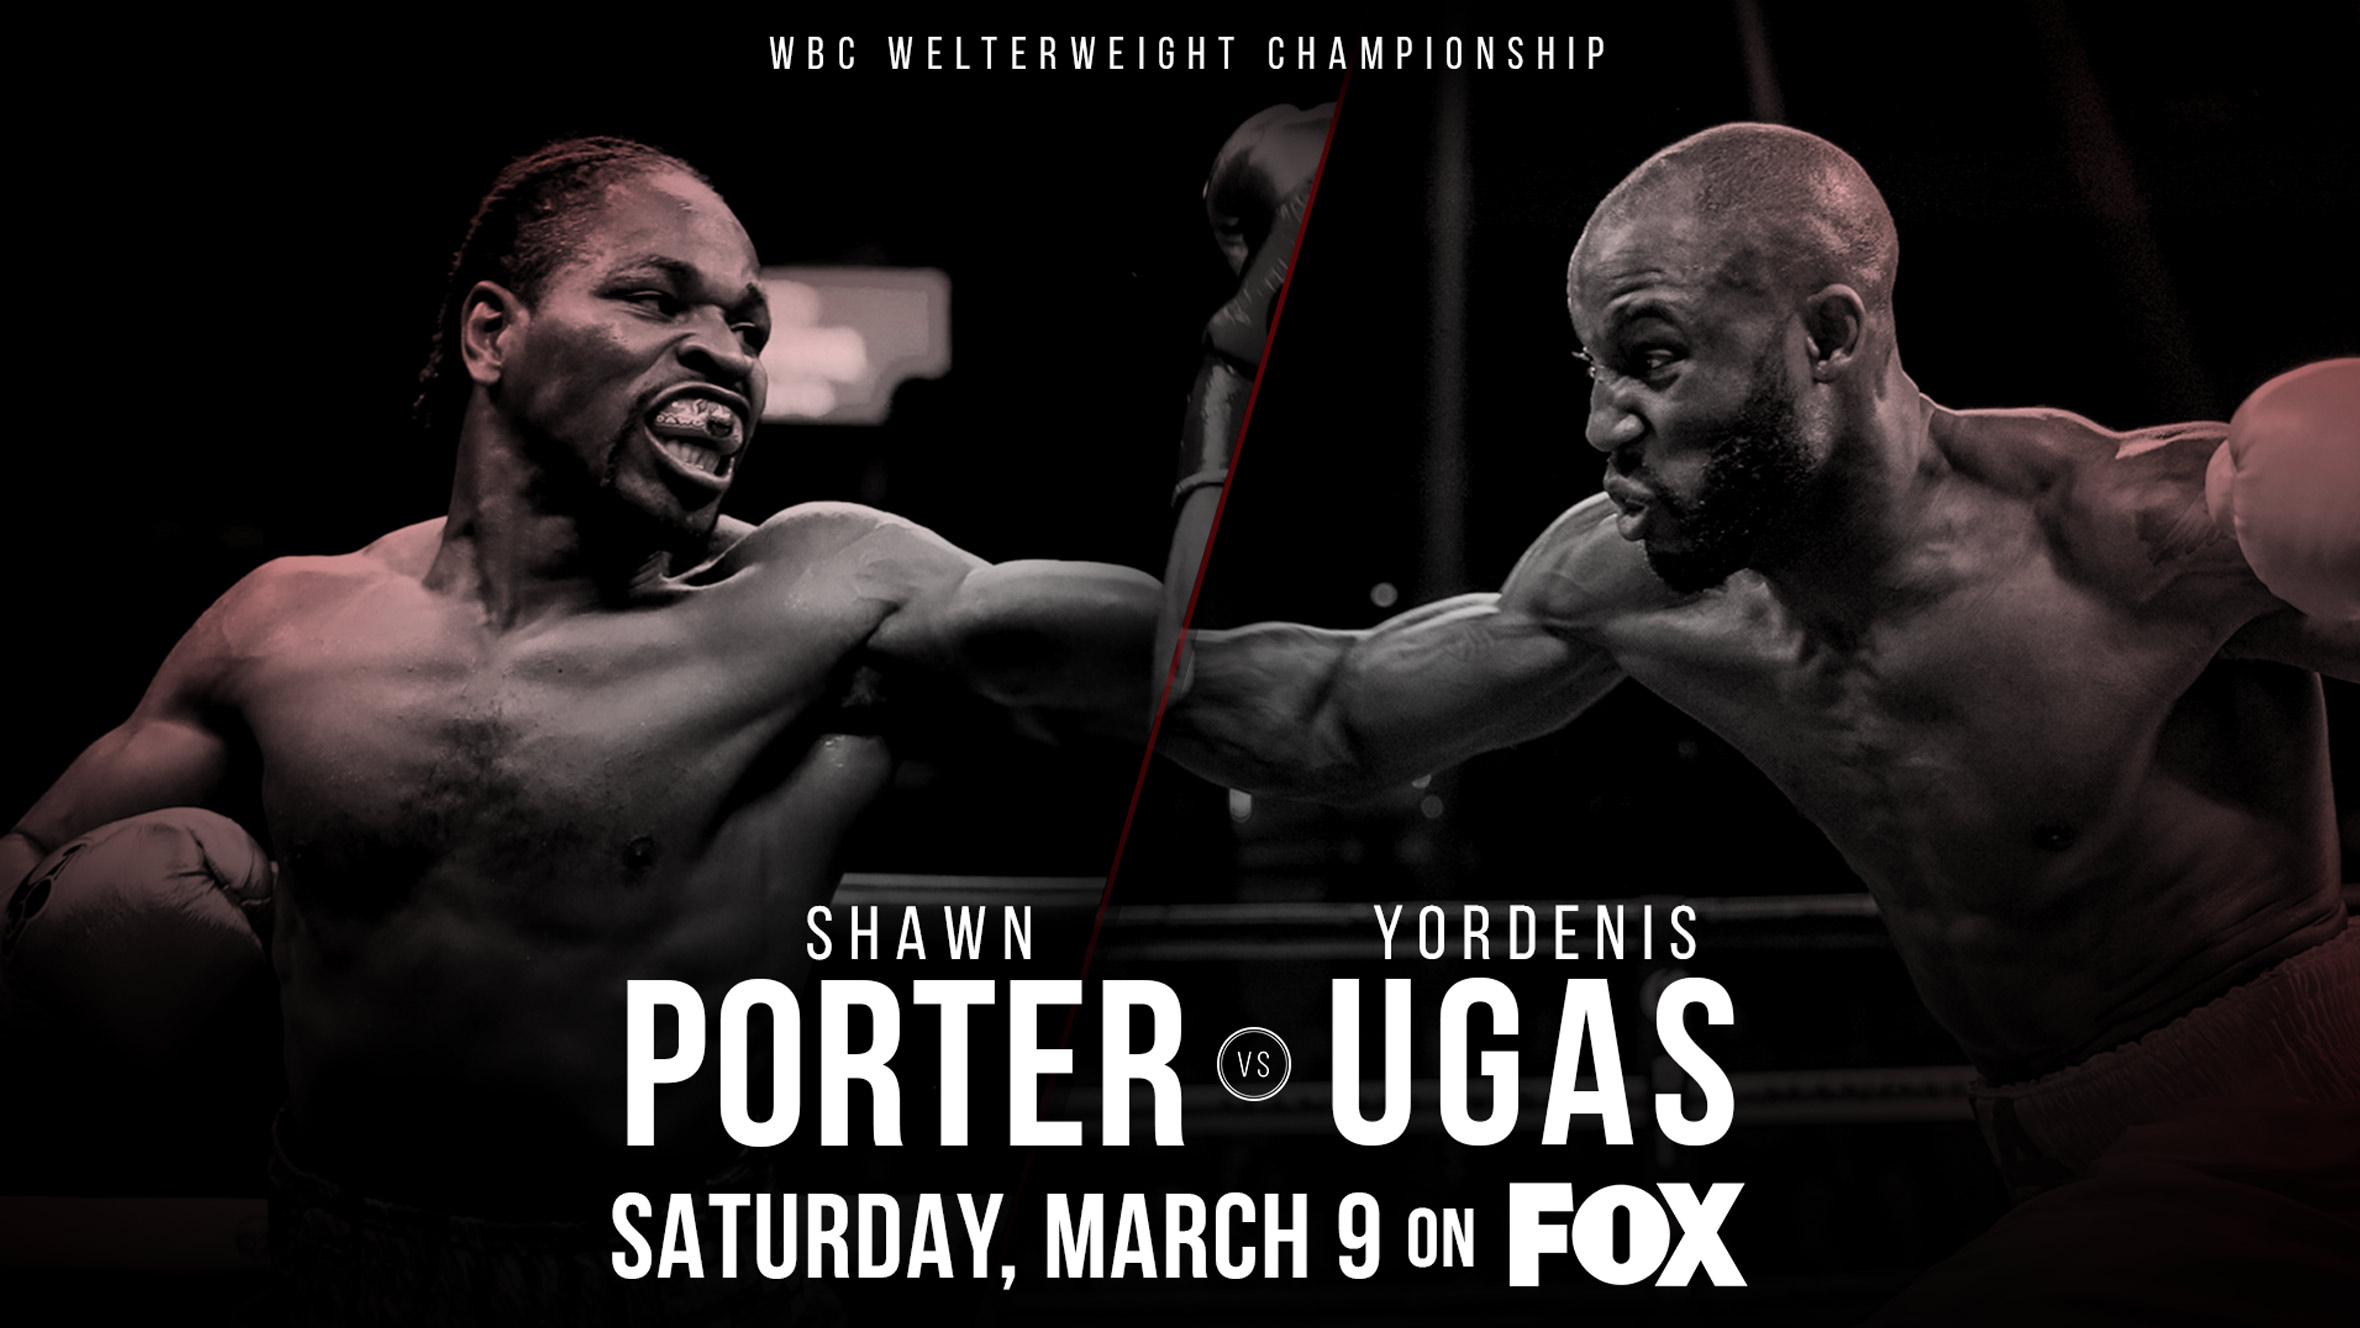 Le Meilleur Welterweight World Champion Shawn Porter Defends His Wbc Ce Mois Ci